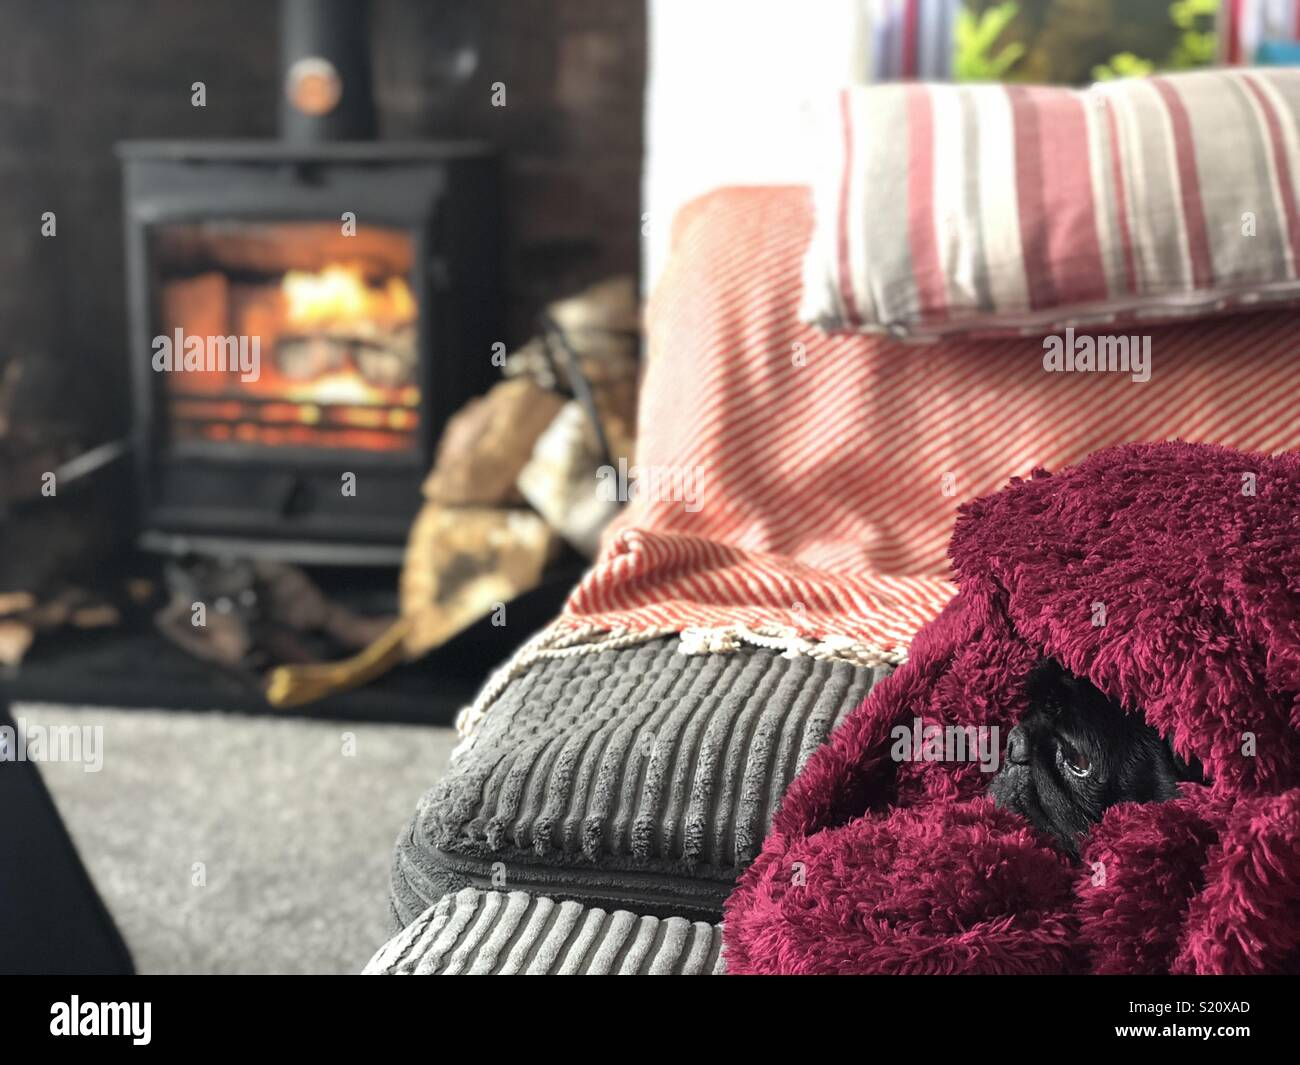 Snug as a pug in a rug - Stock Image